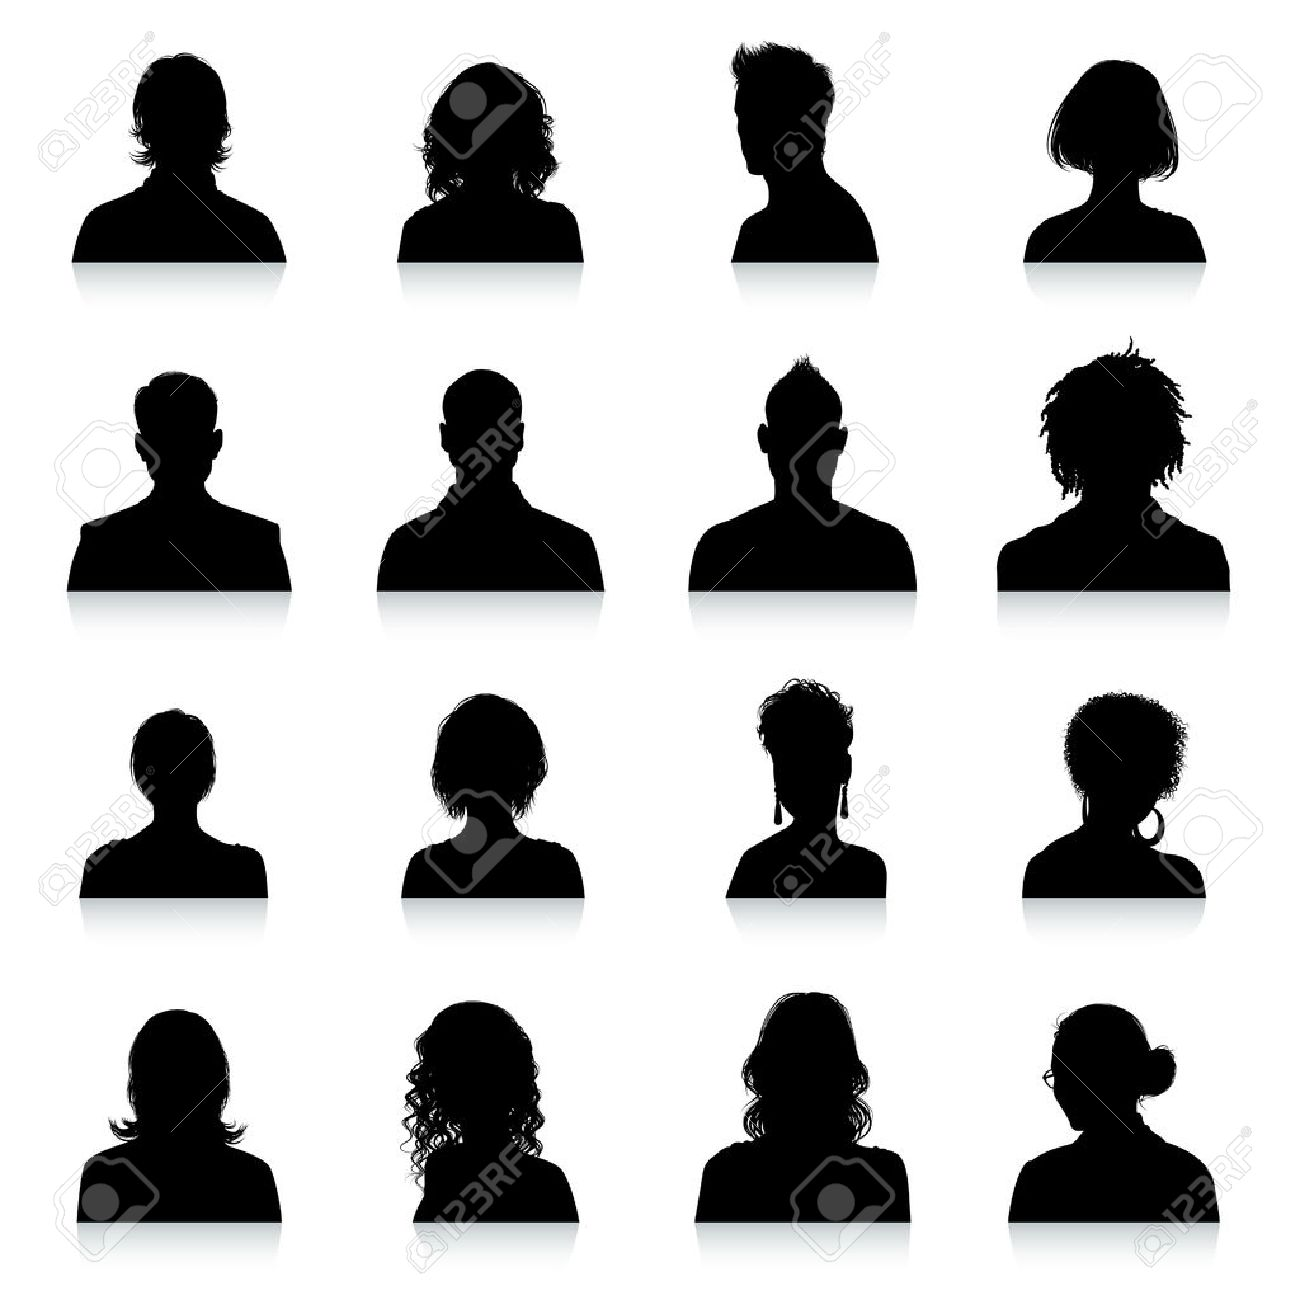 A collection of 16 high detail avatars silhouettes. - 42663157